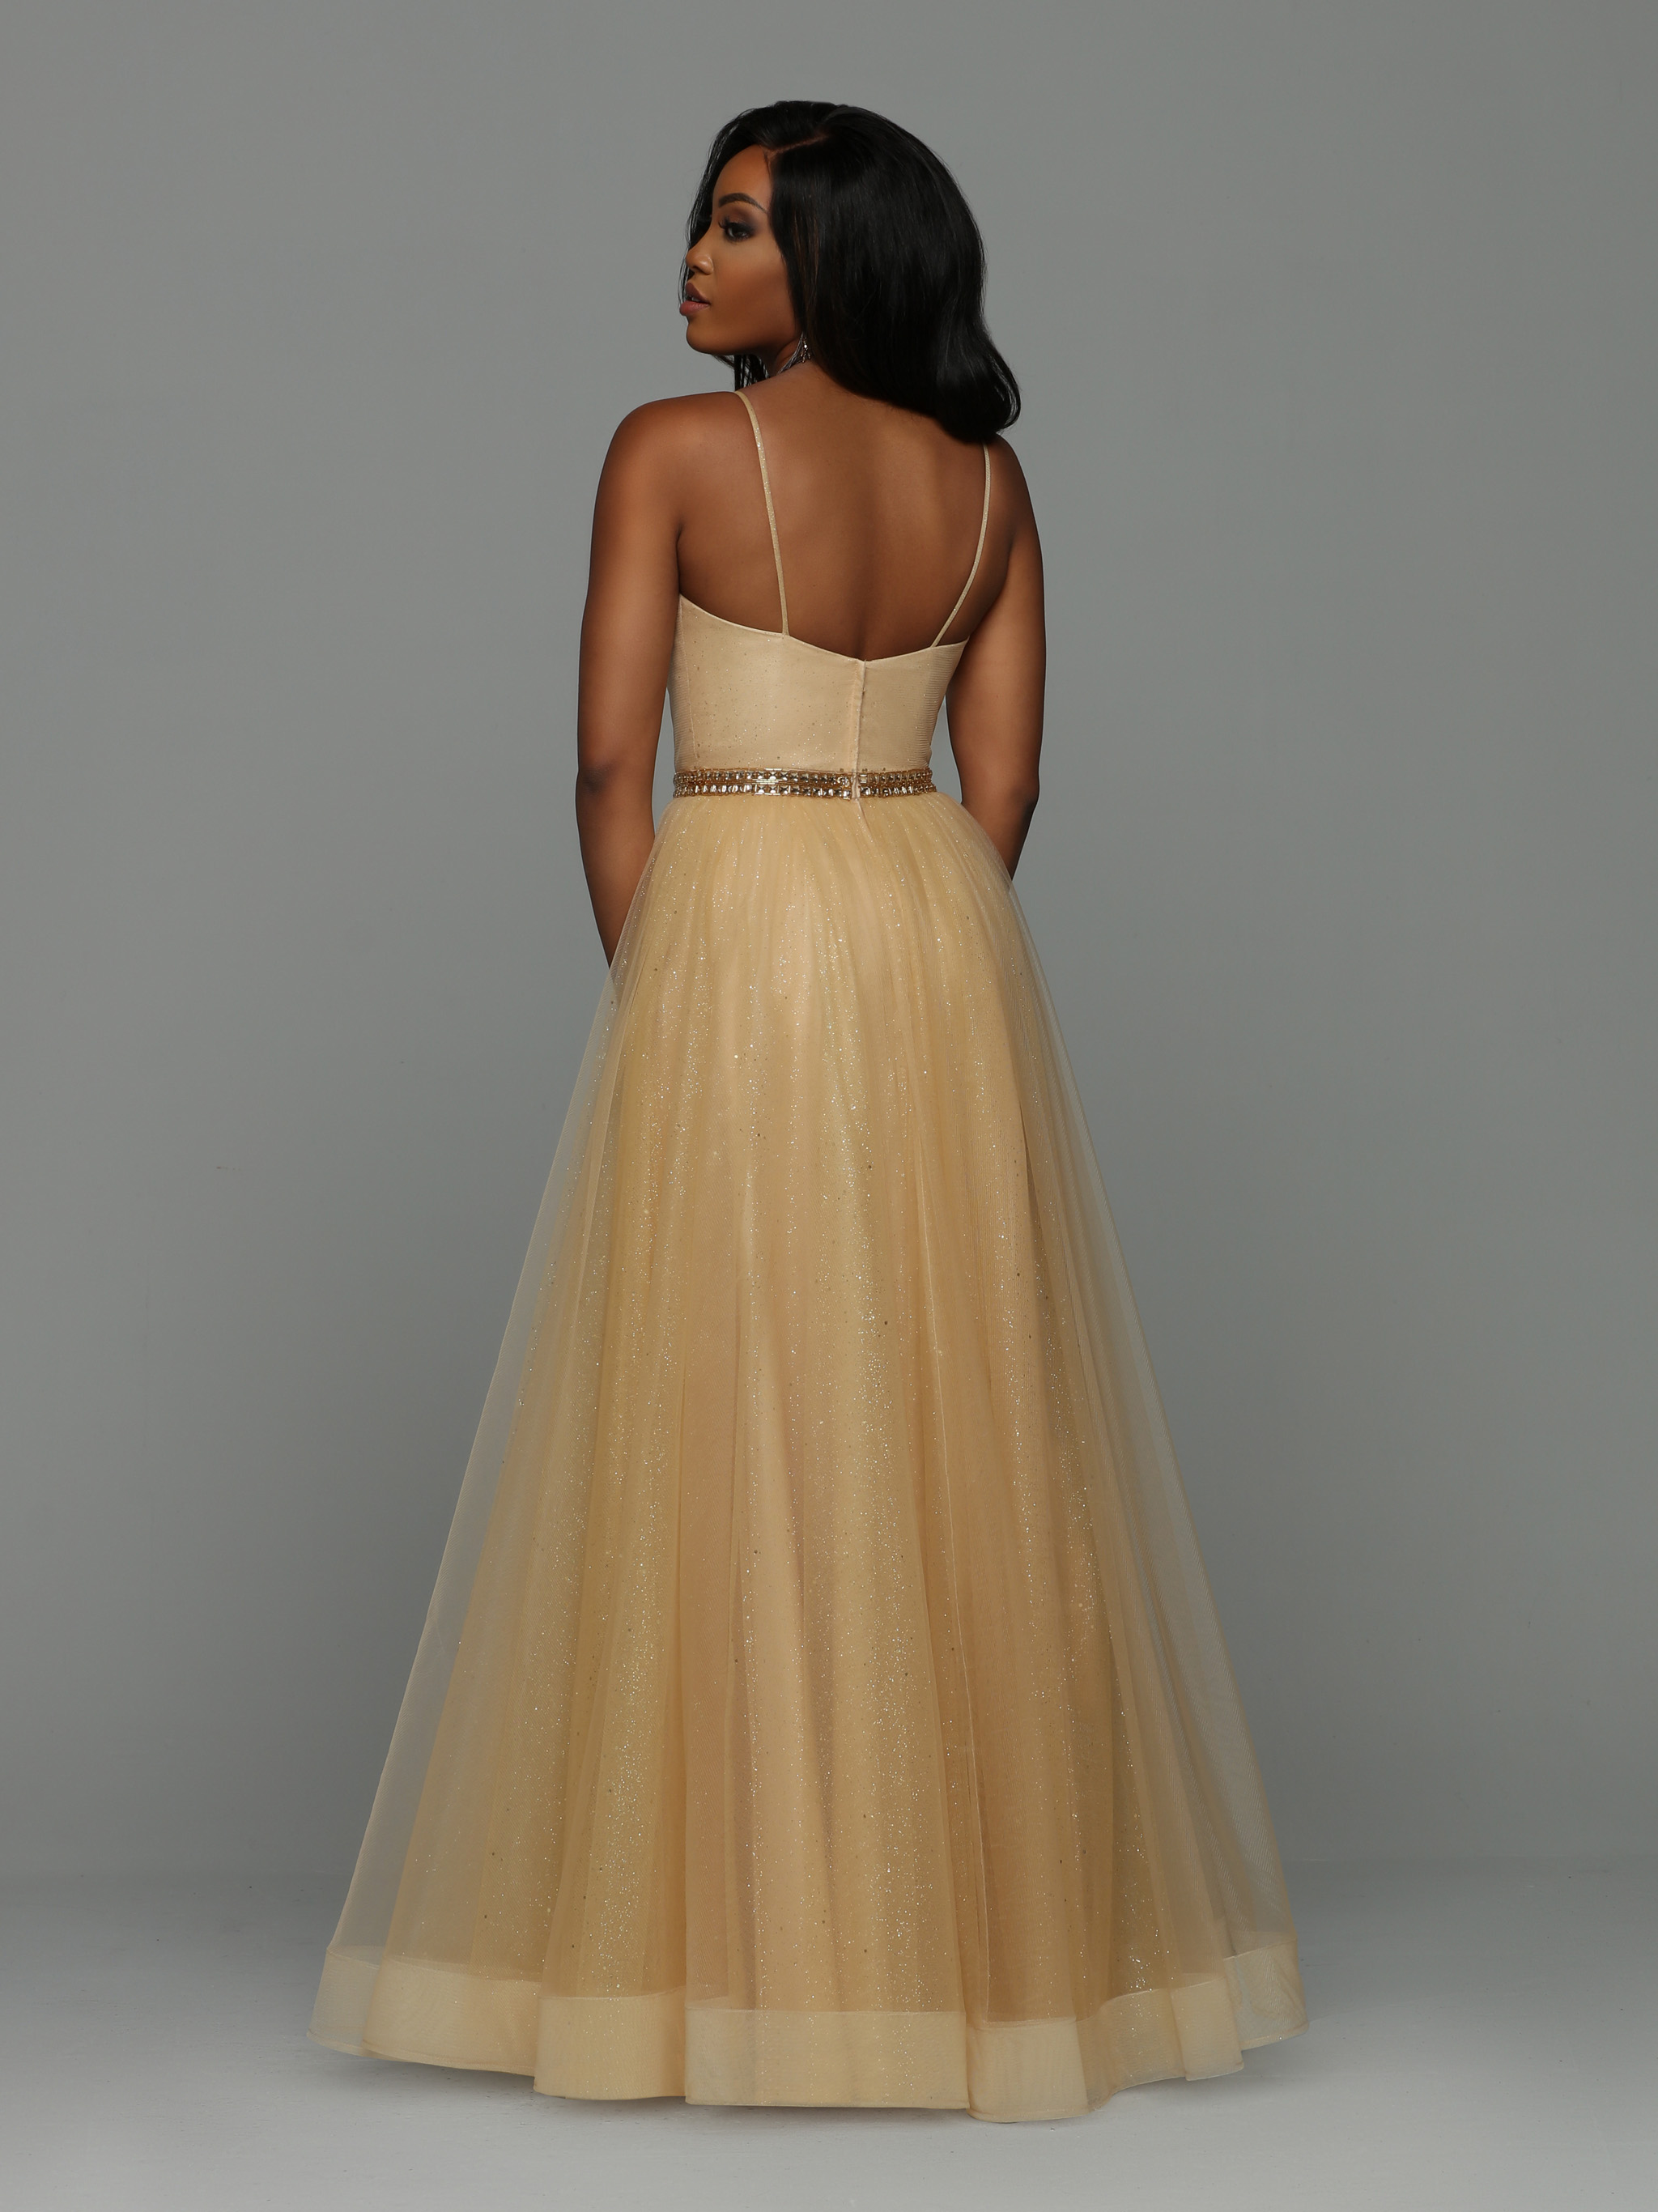 Image showing back view of style #71972